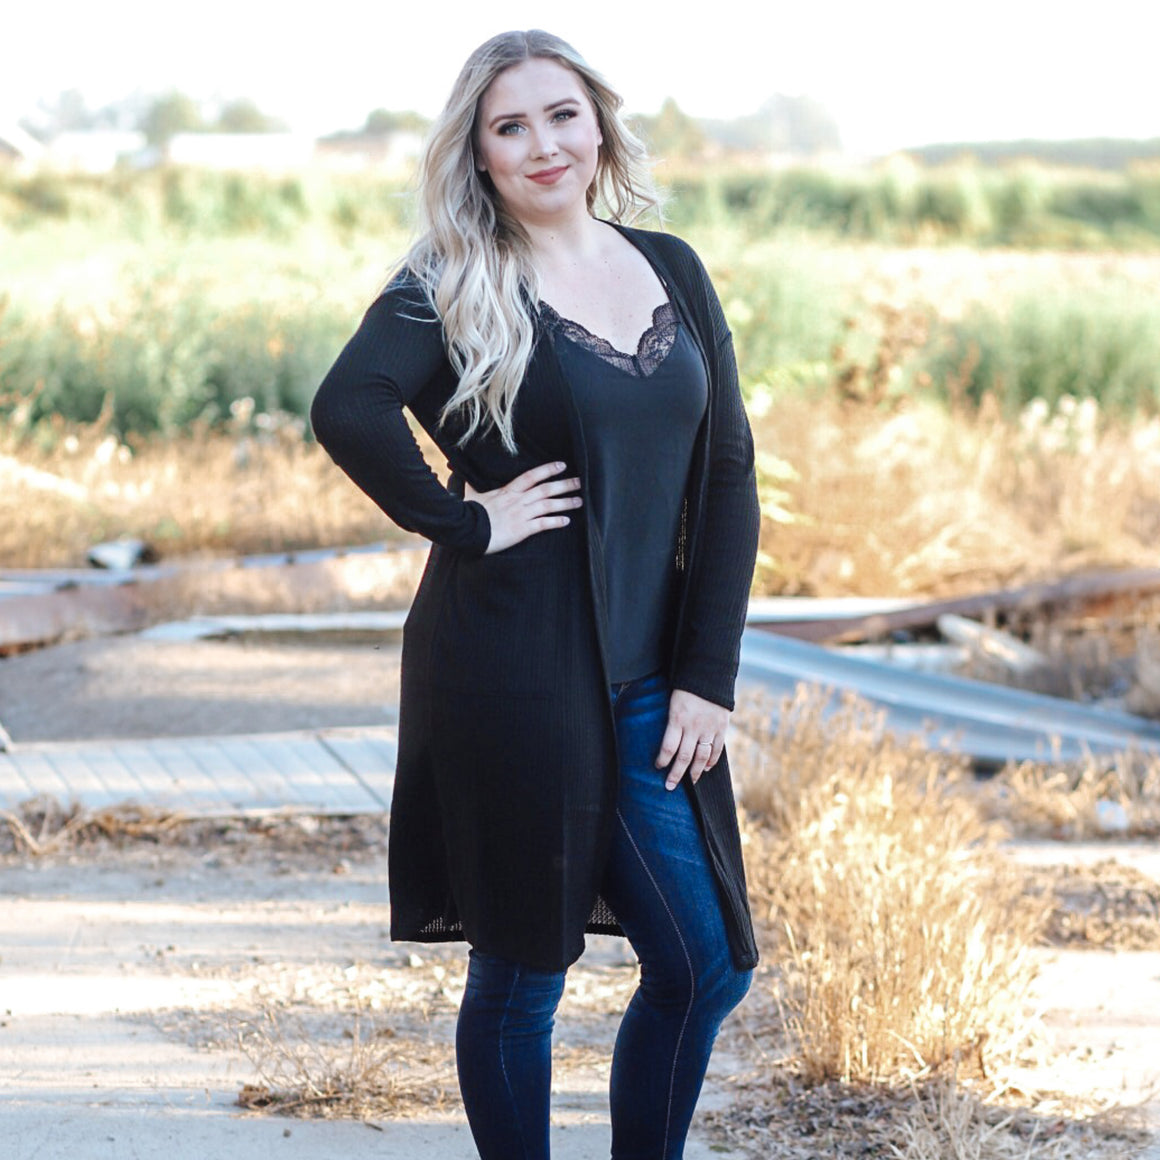 Duster - Hooked On You Cardigan (Black)